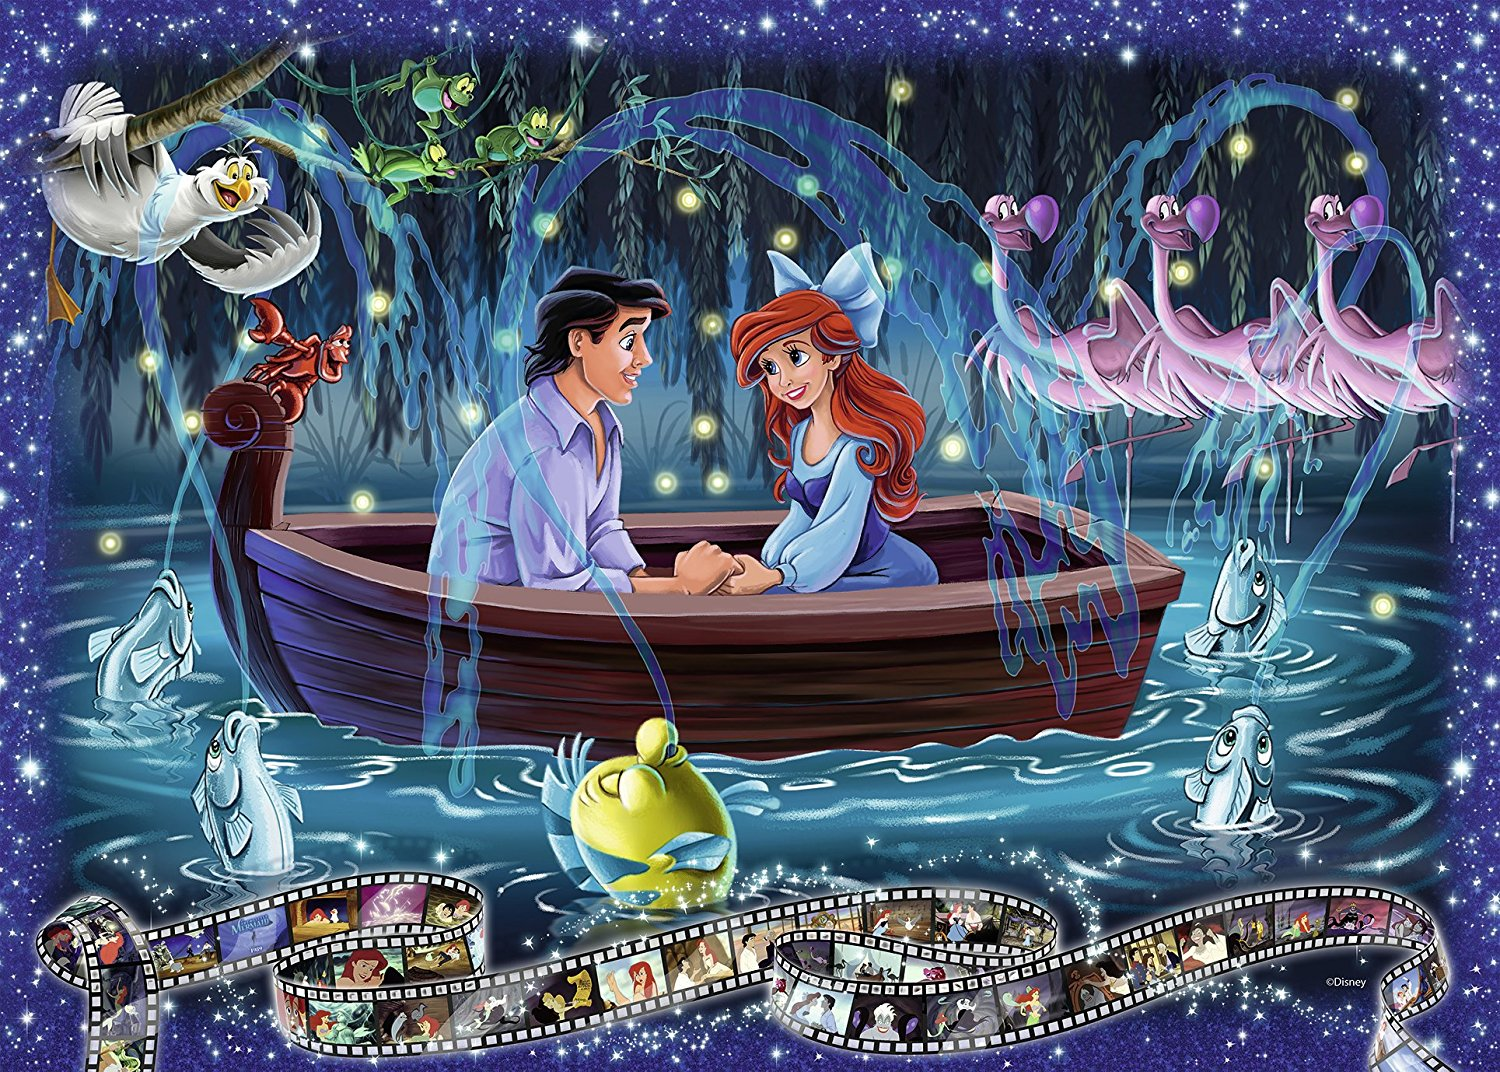 Disney - The Little Mermaid 1000 piece jigsaw puzzle